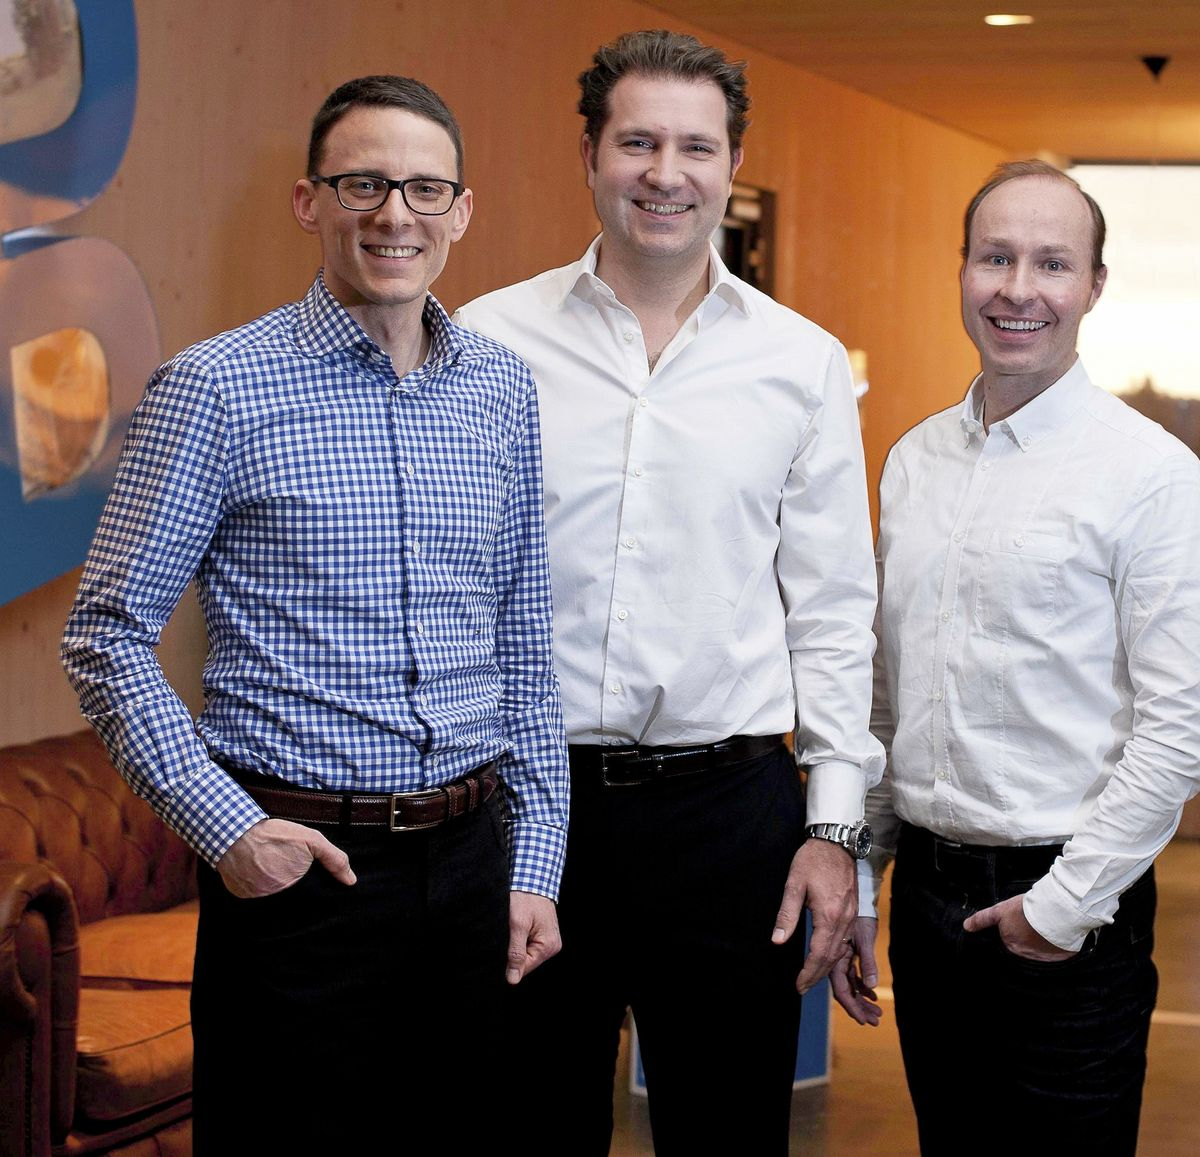 From left to right: J. Mayer (Chaiman), H. Schwarz (CFO and COO) and Michael Burk (CEO).